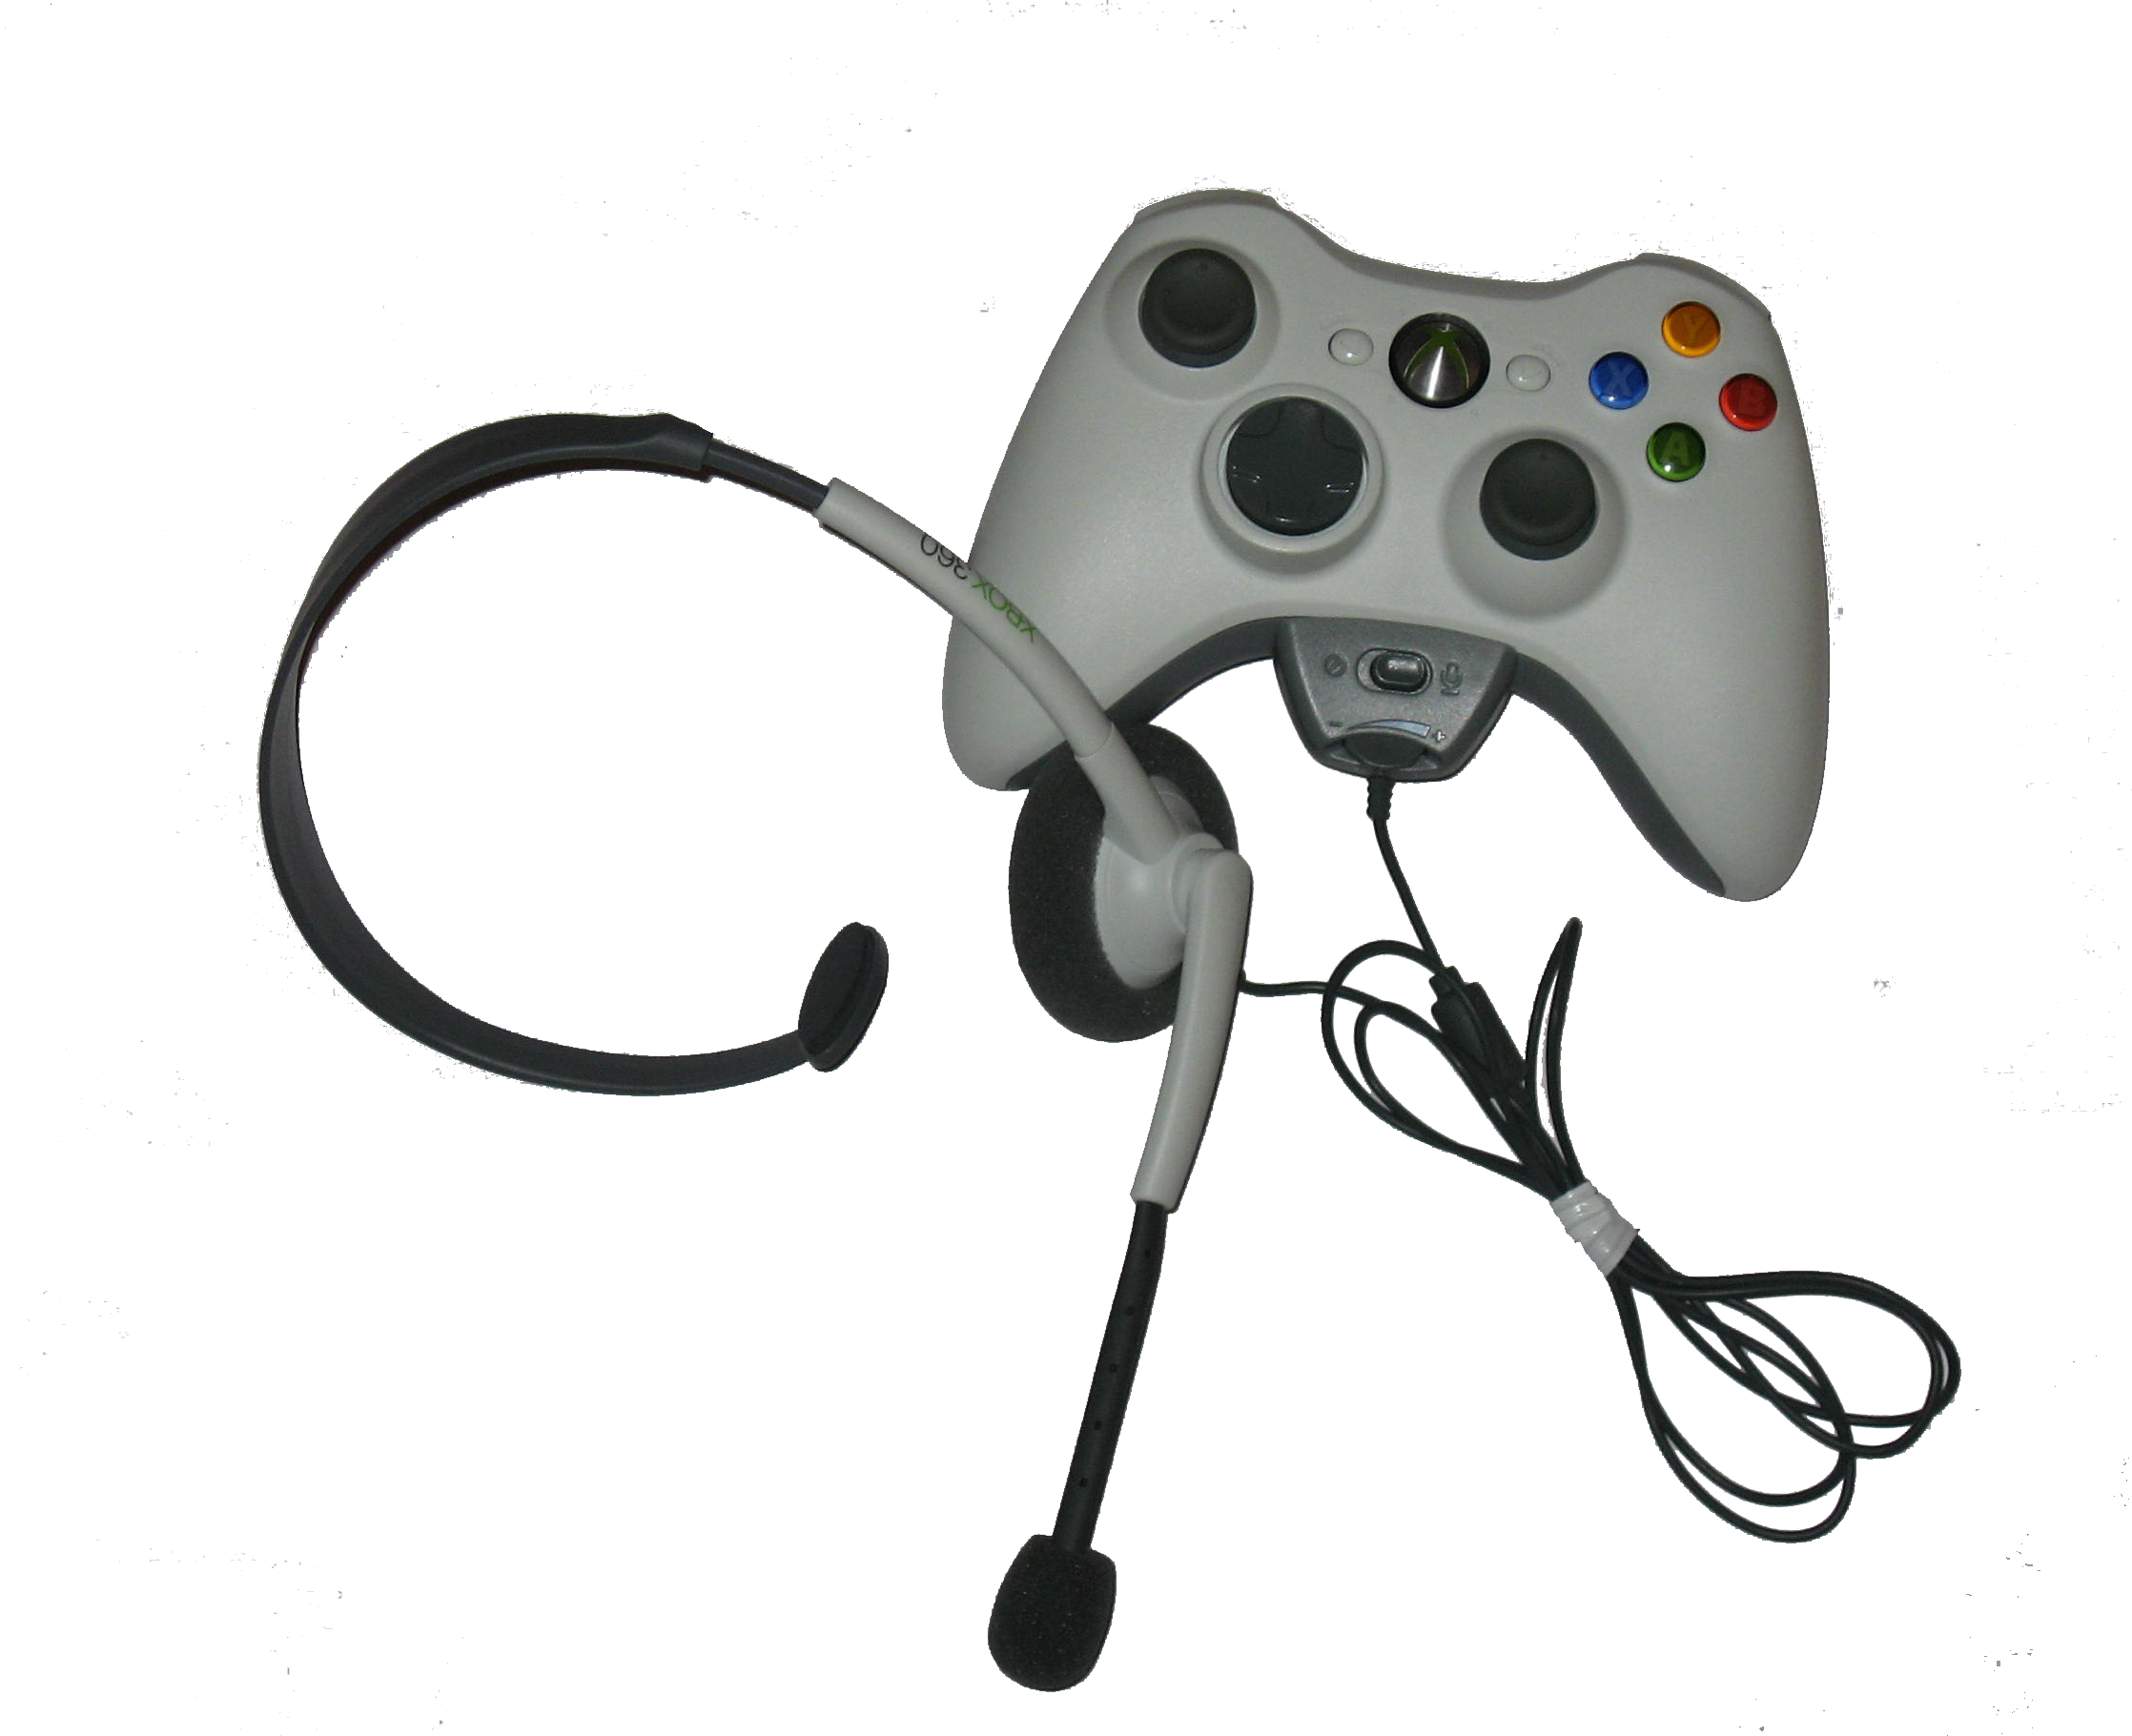 File:Xbox360Controller WiredHeadset.png - Wikimedia Commons